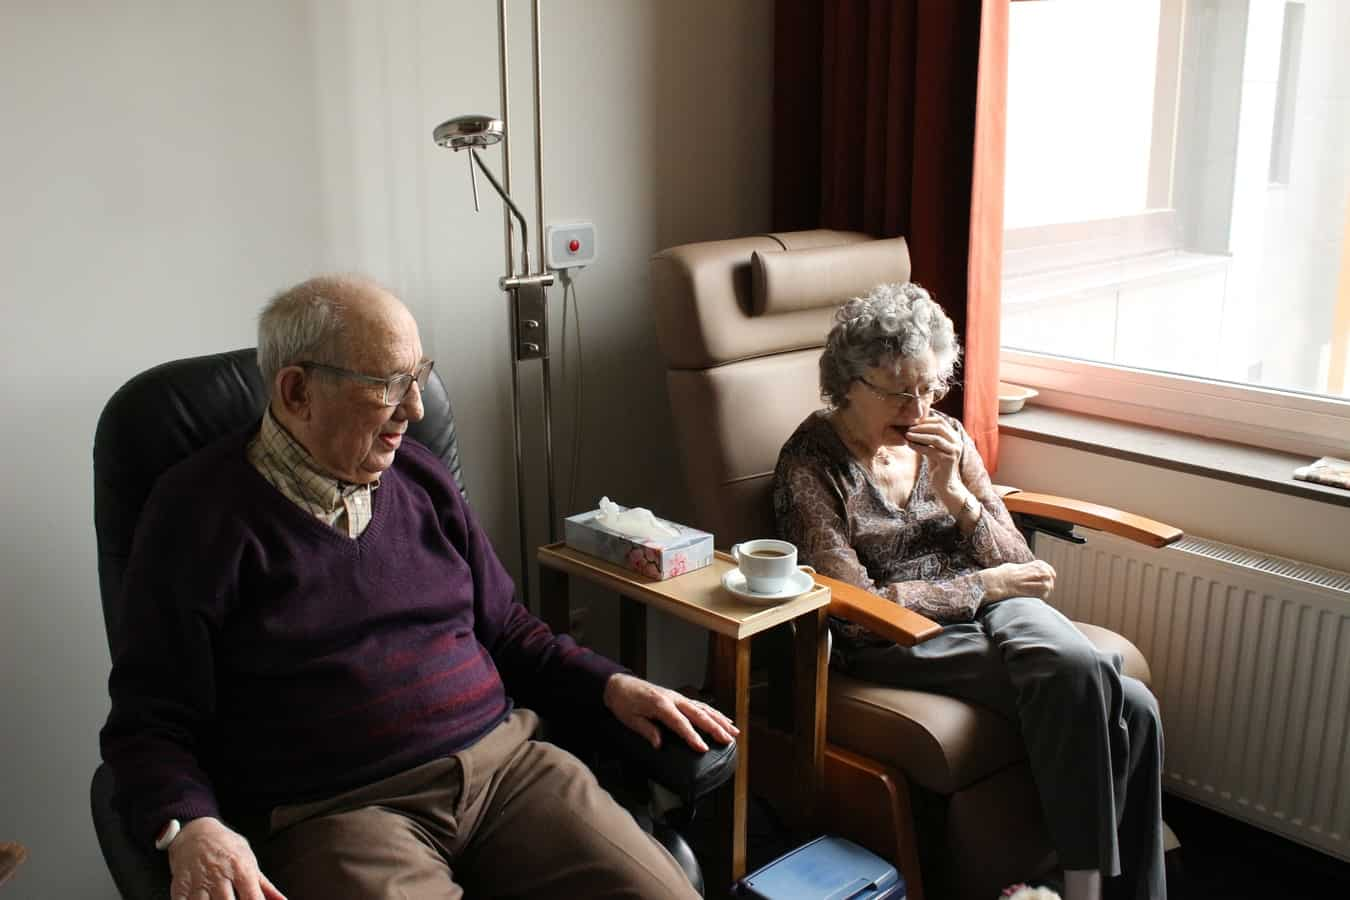 Older couple sitting in chairs